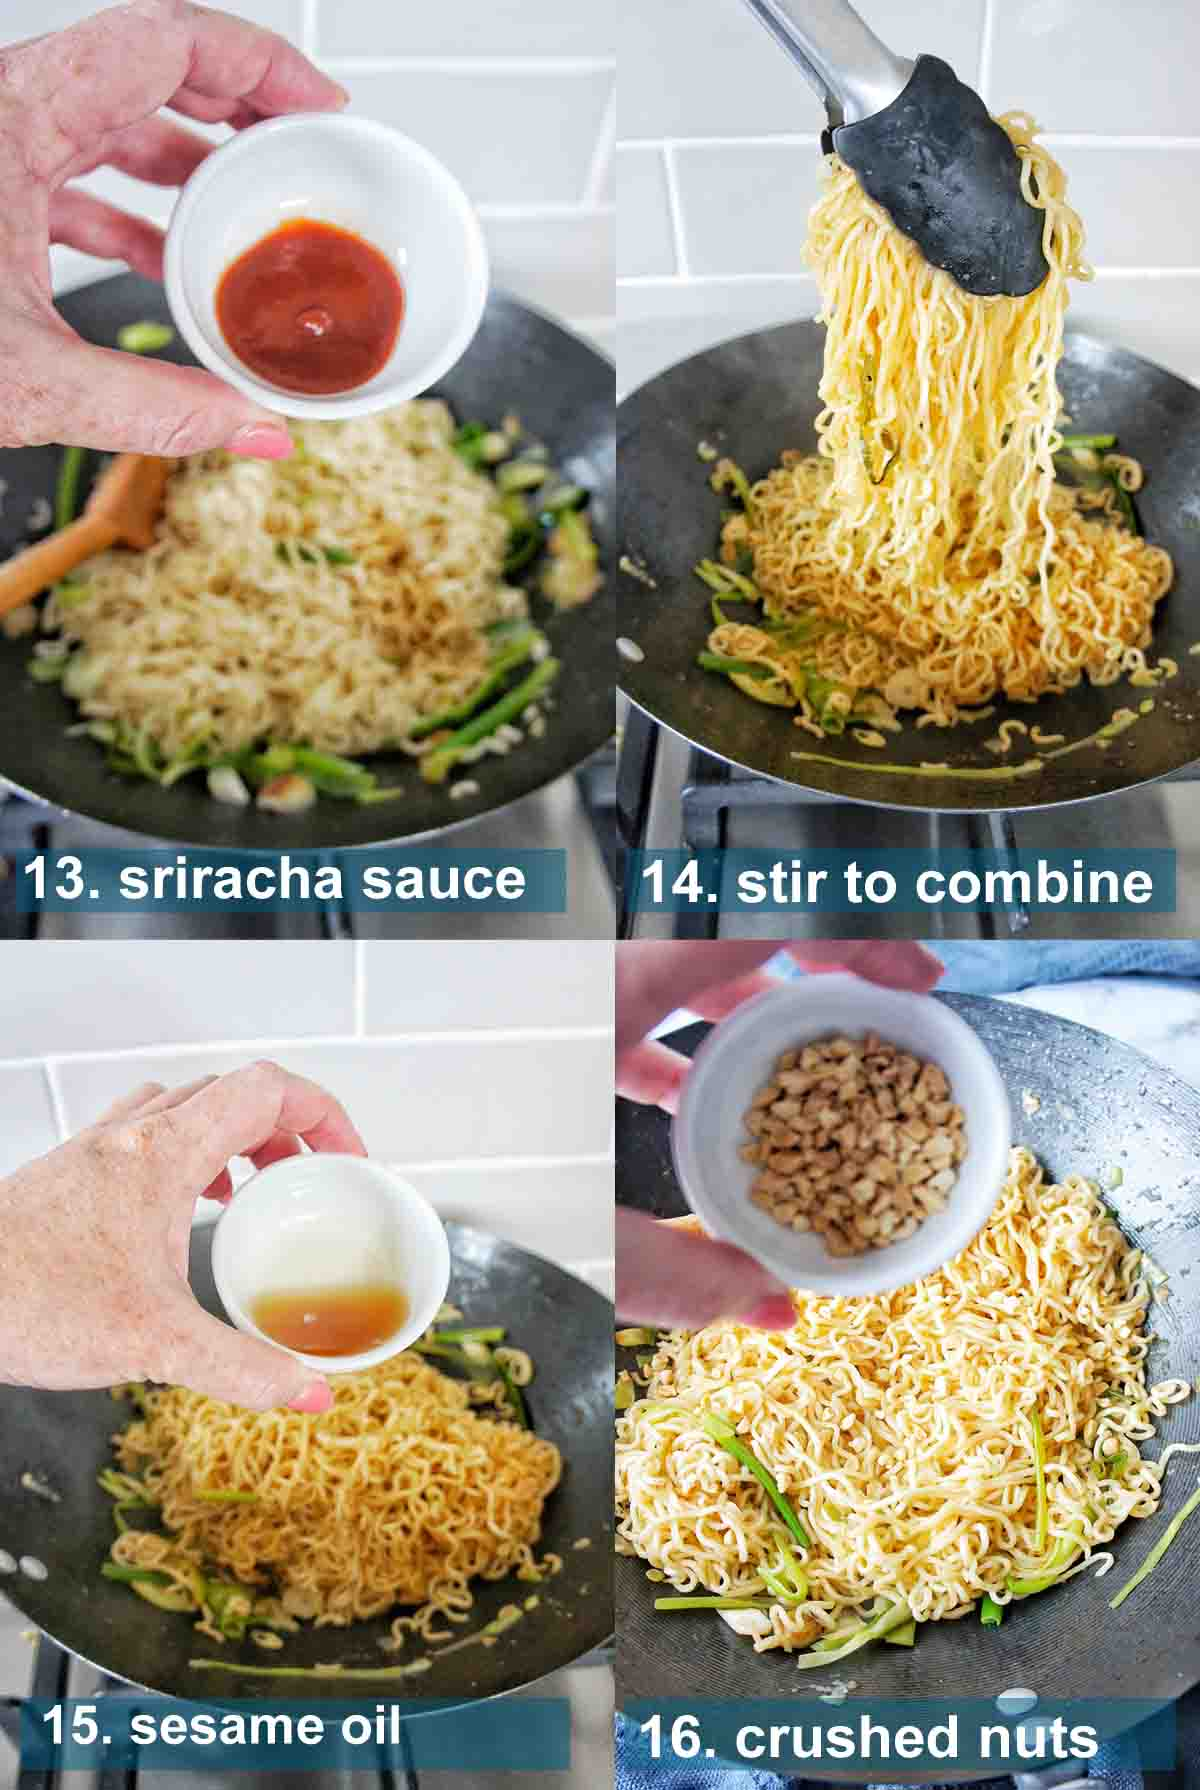 Scallion noodles with ginger method 13 to 16 with text labels